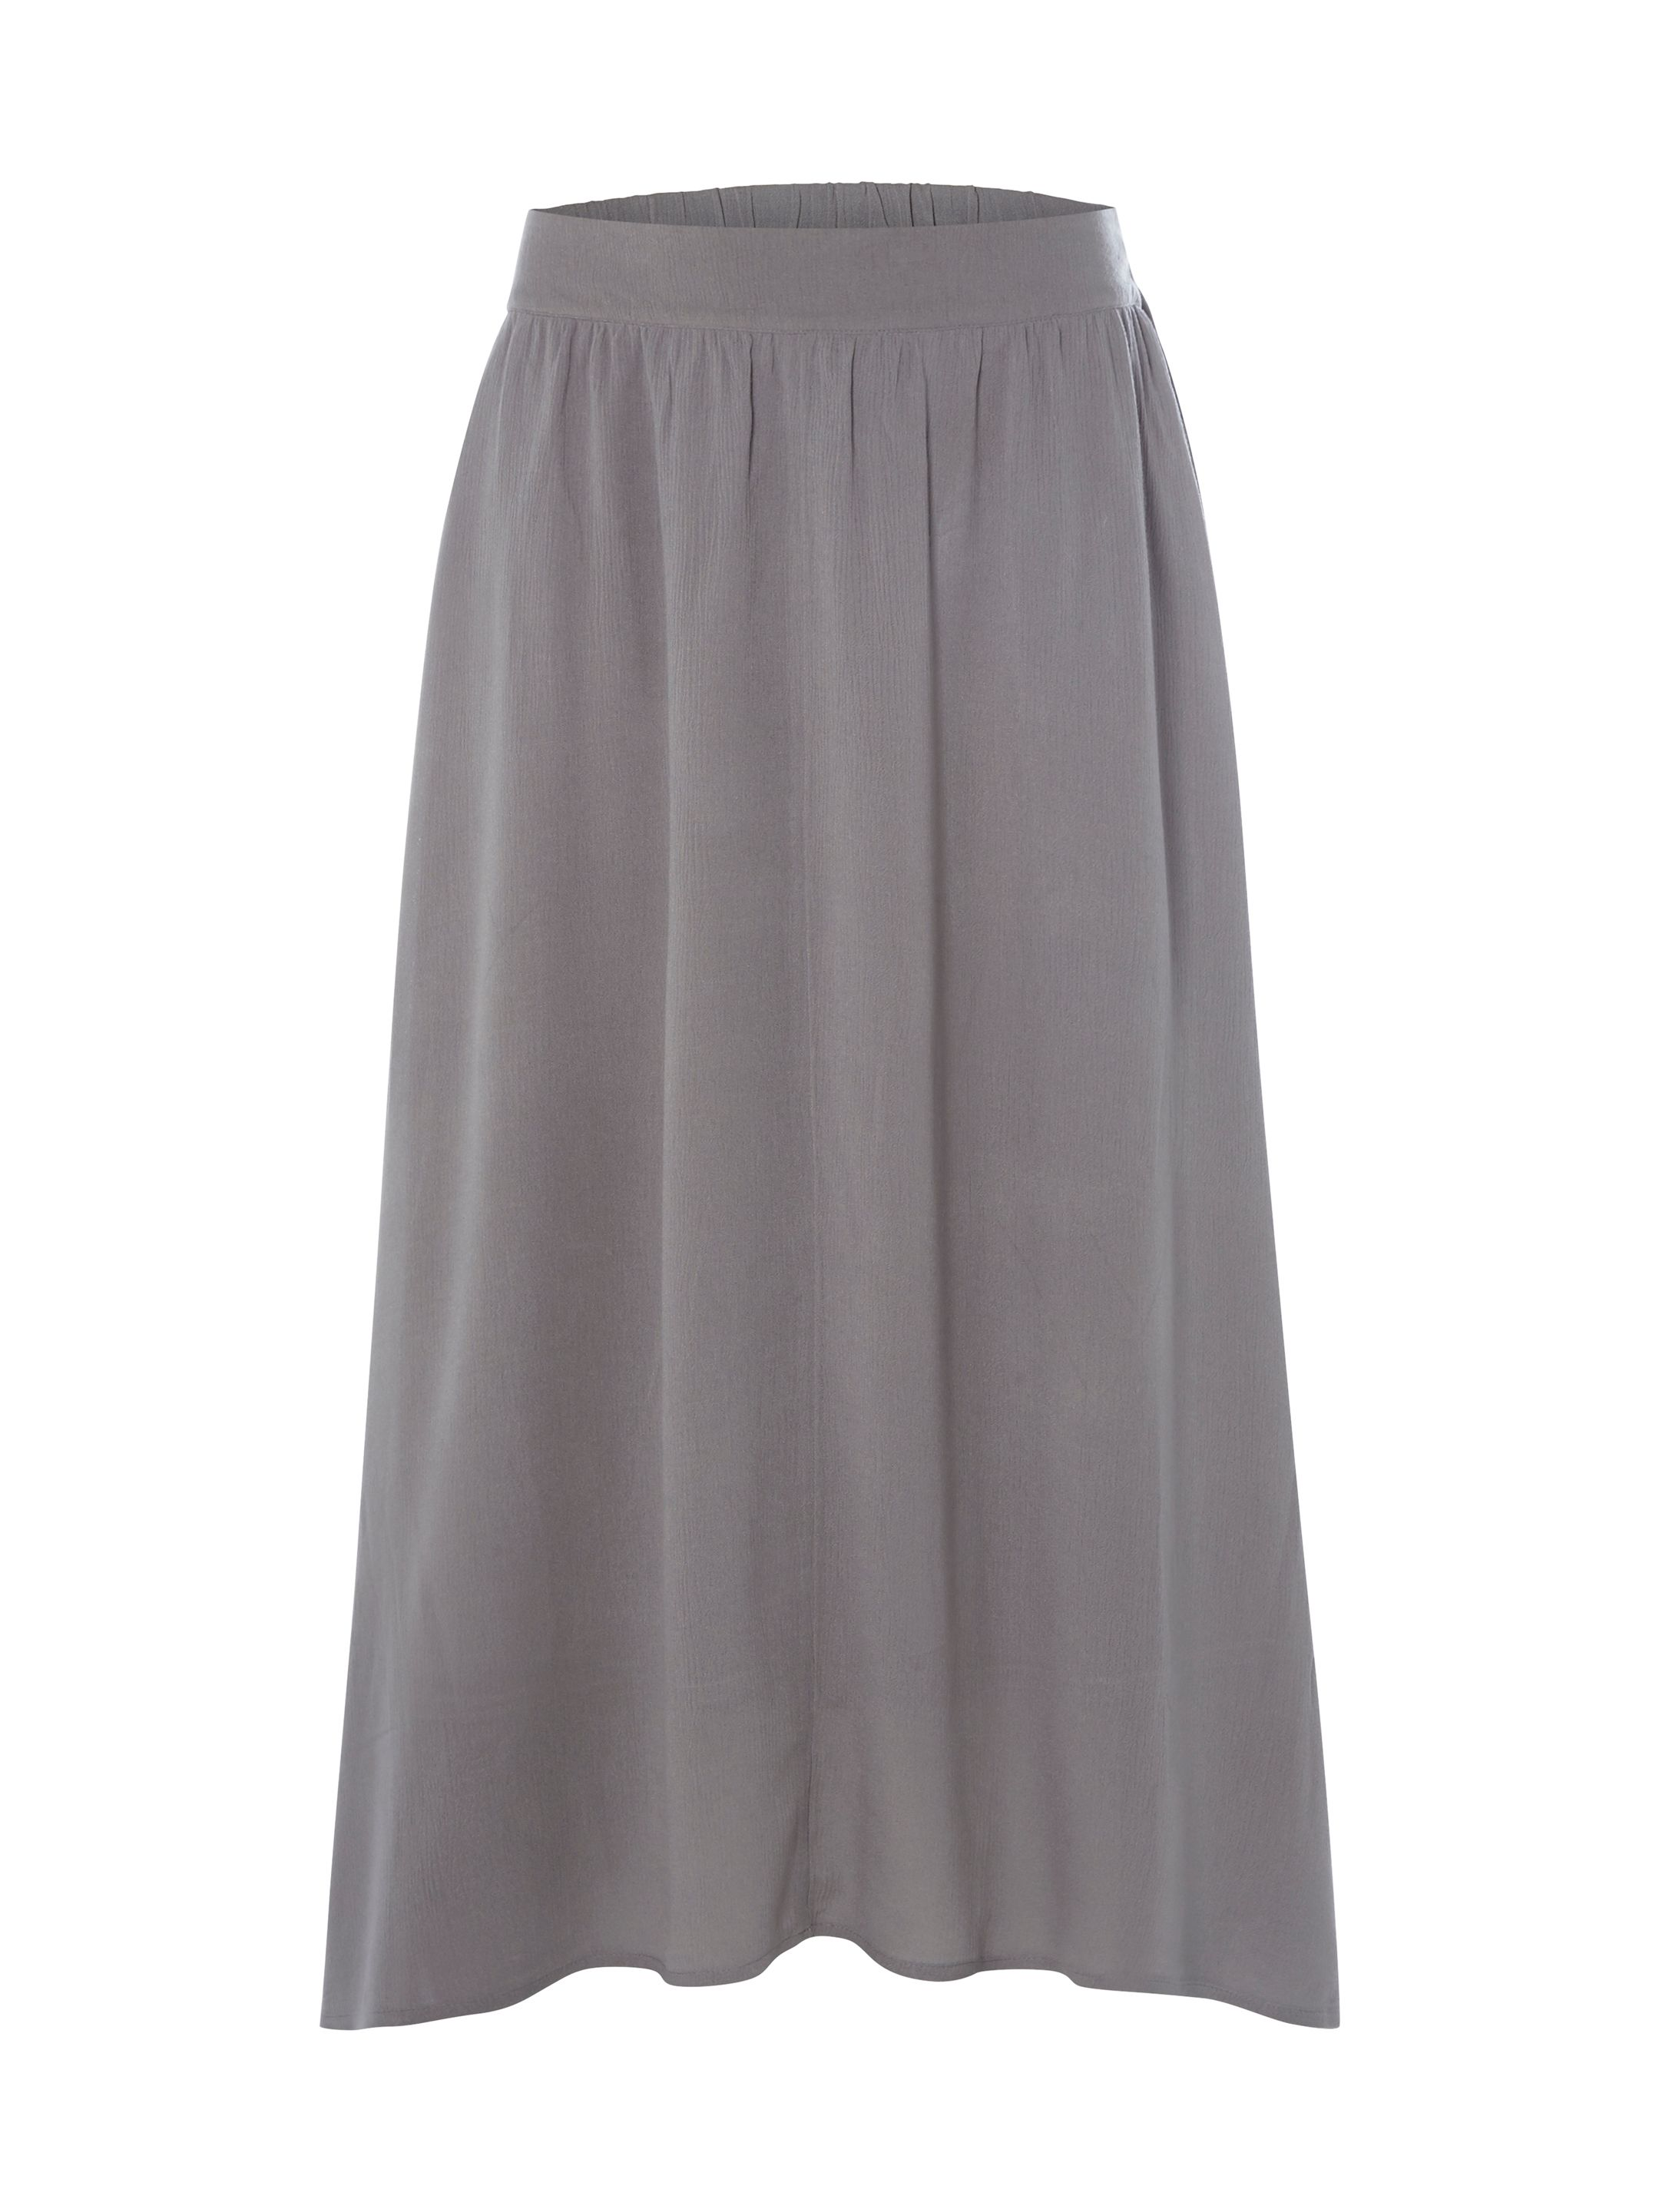 White Stuff Brush Stroke Maxi Skirt, Grey